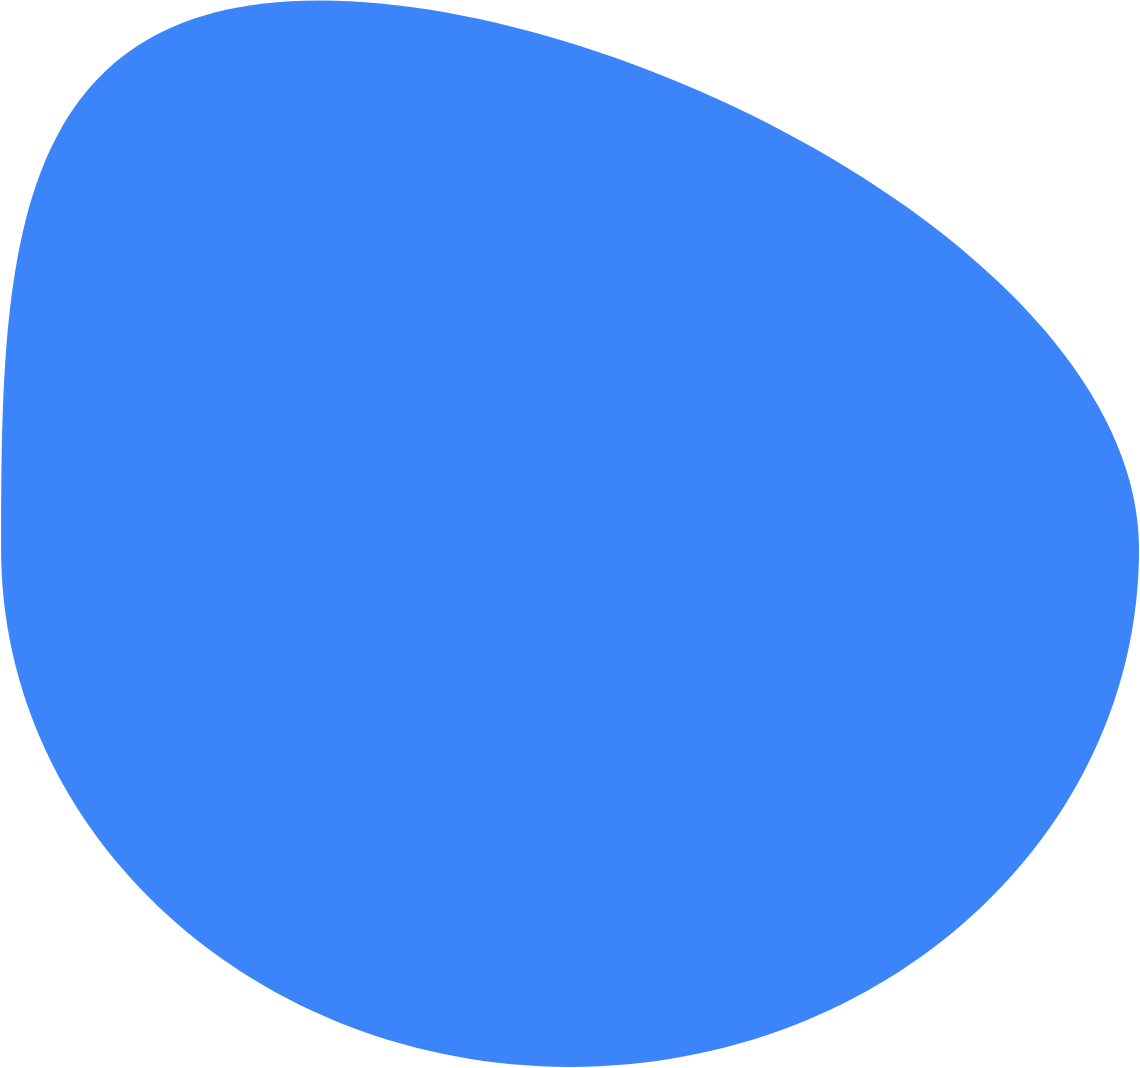 Graphic png image